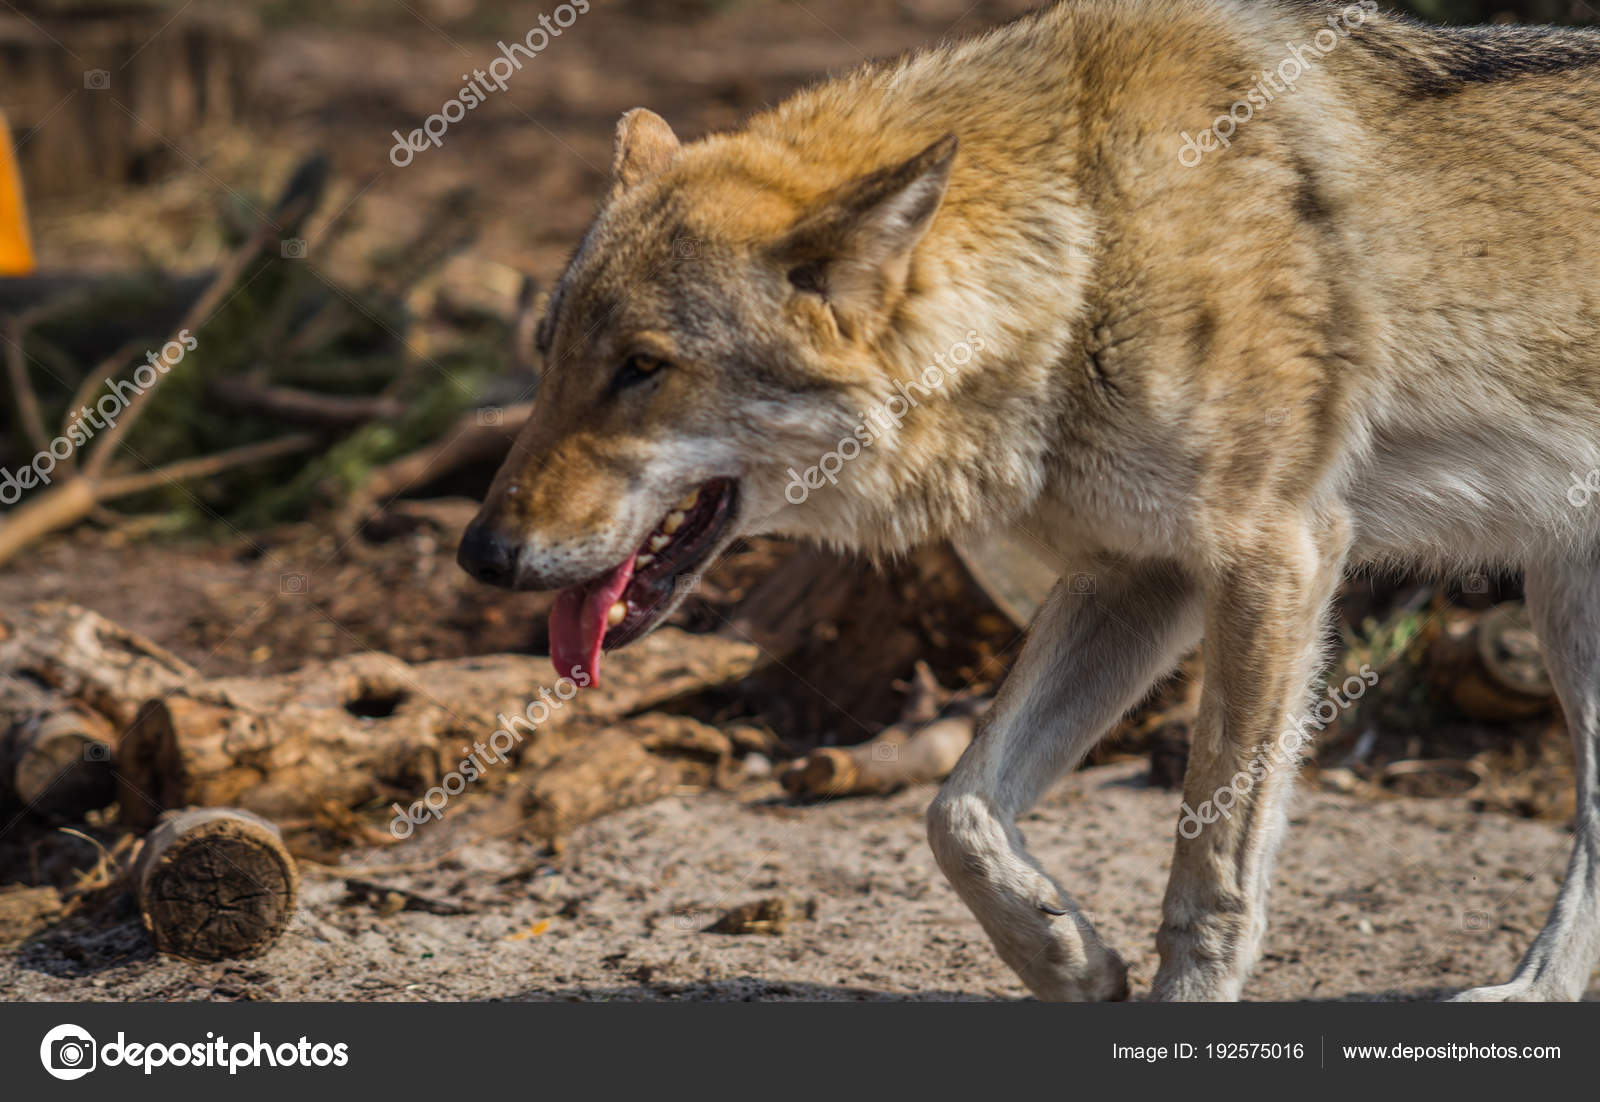 Wolf in natural habitat, Curonian Spit, Kaliningrad region